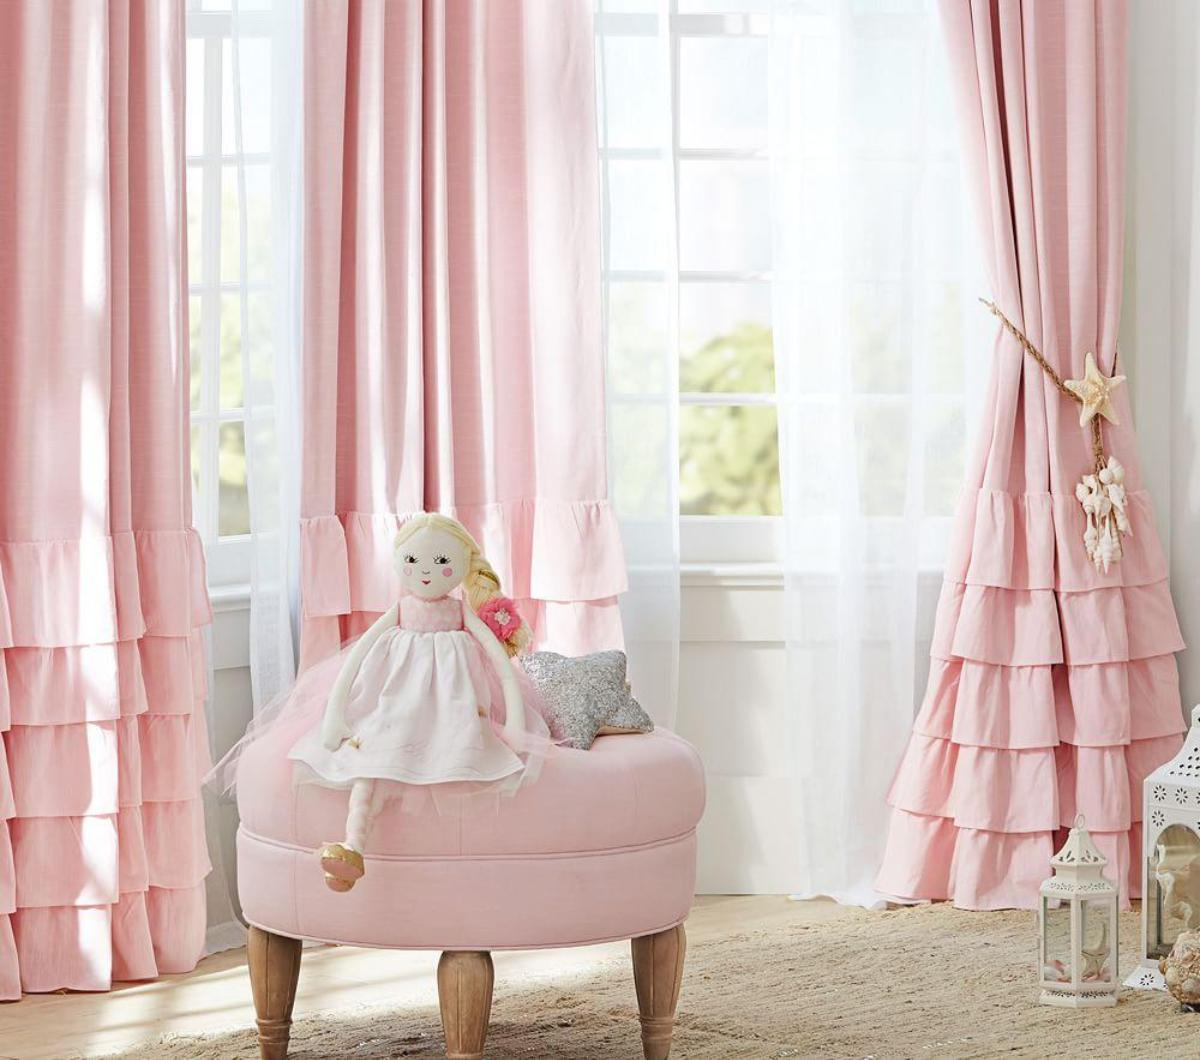 Bedroom Curtains Room Darkening Curtain Ruffle Blackout Curtains Kids Room Darkening